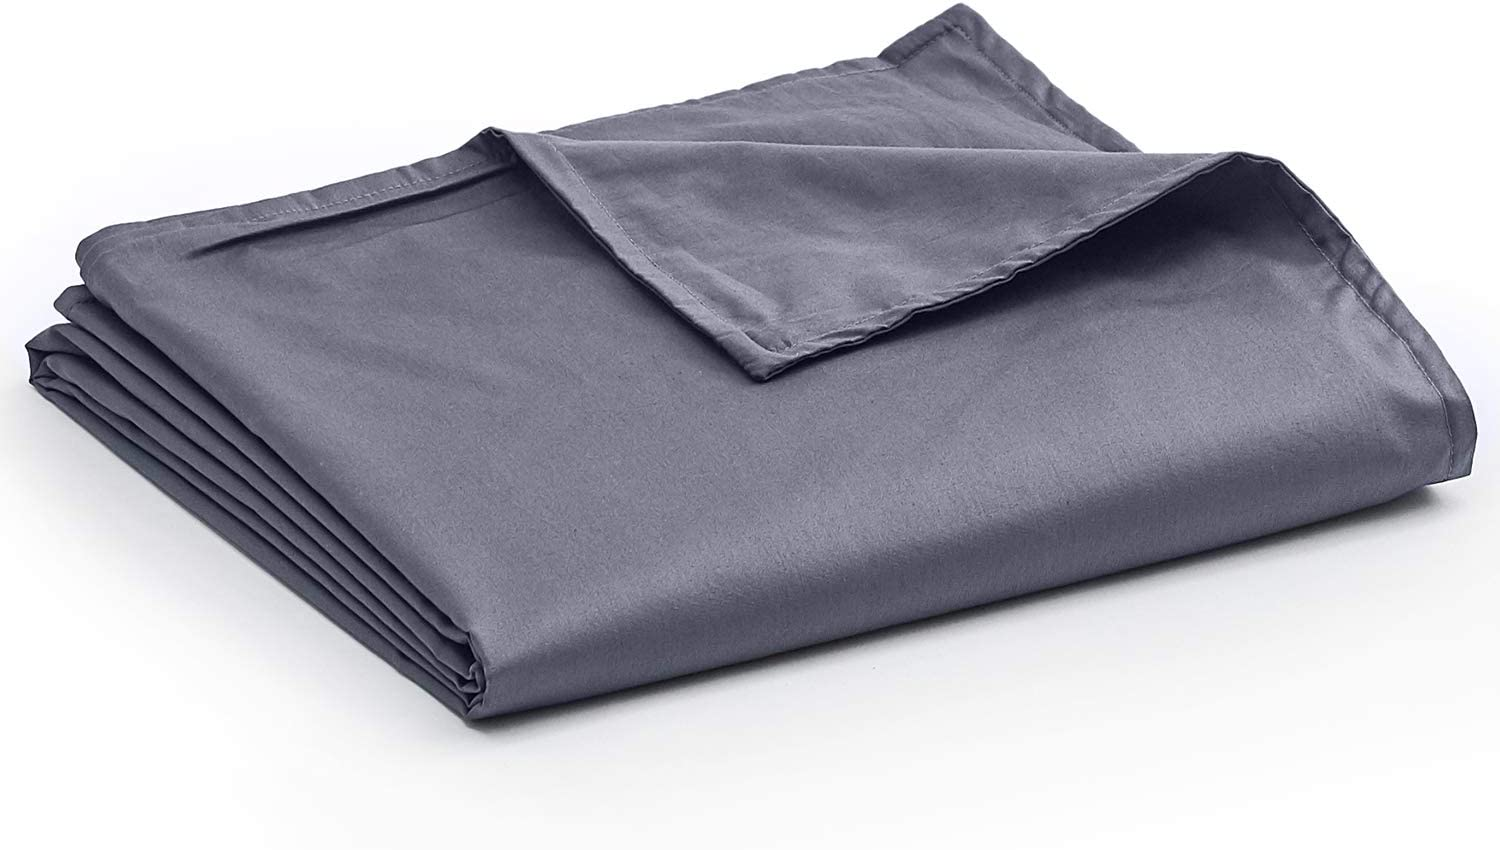 YnM Cotton Duvet Cover for Weighted Blankets (48''x72'') - Dark Grey Print